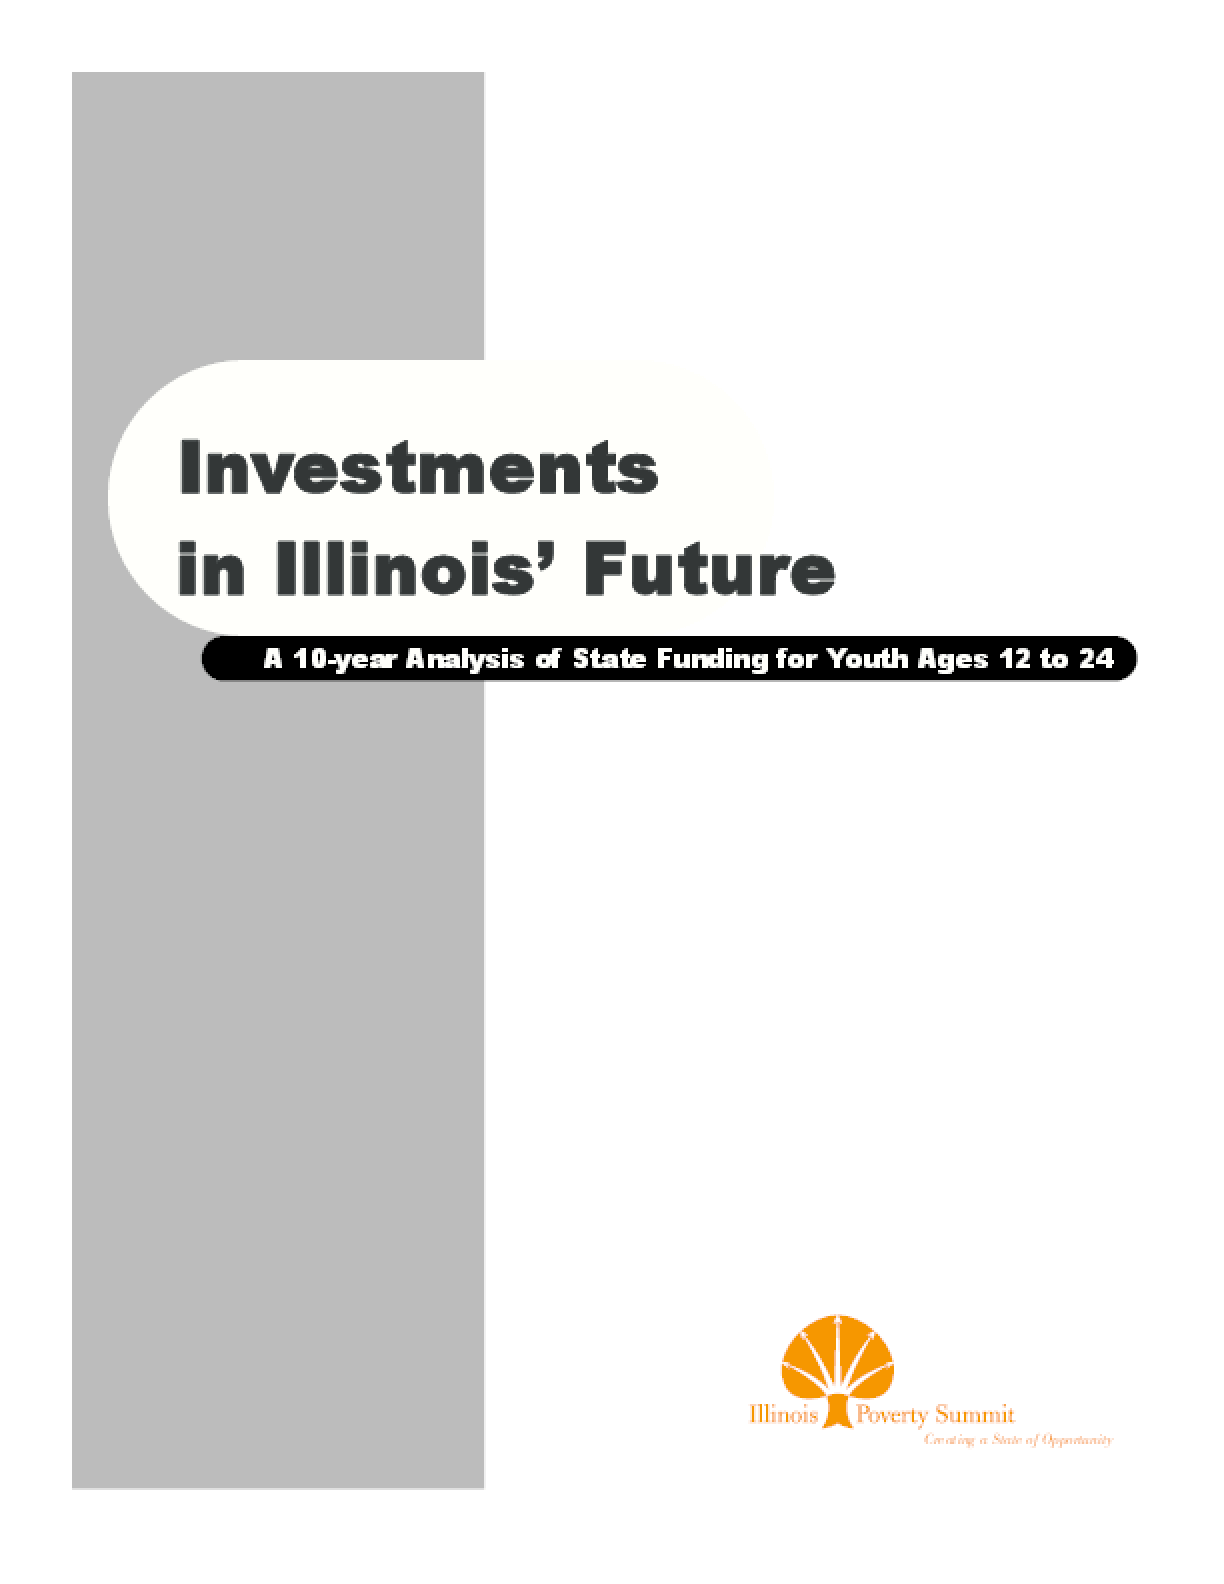 Investments in Illinois' Future: A 10-year Analysis of State Funding for Youth Ages 12 to 24